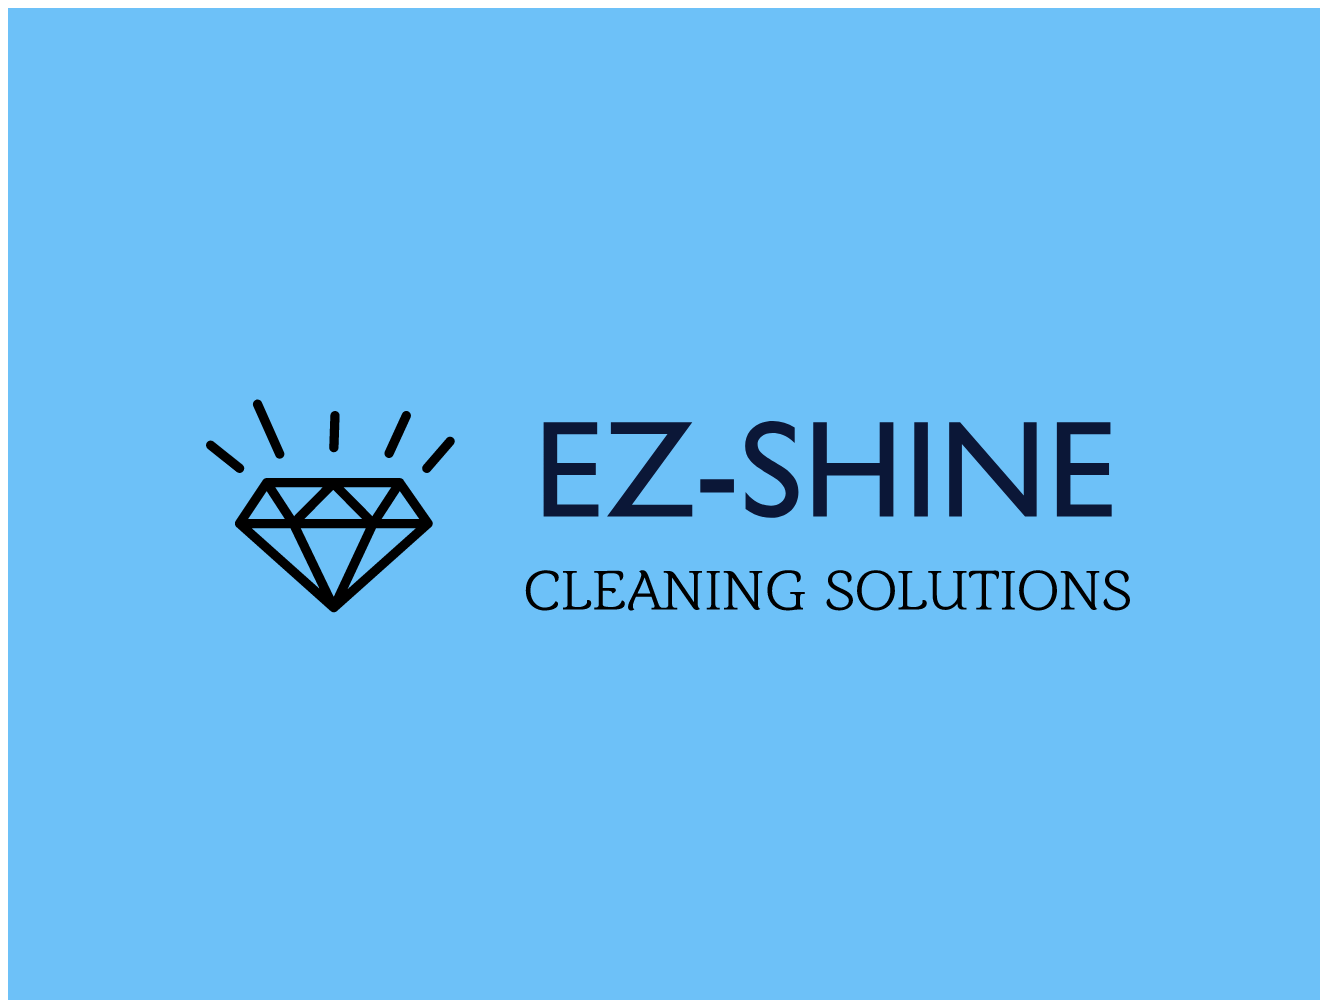 EZ-SHINE Cleaning Solutions image